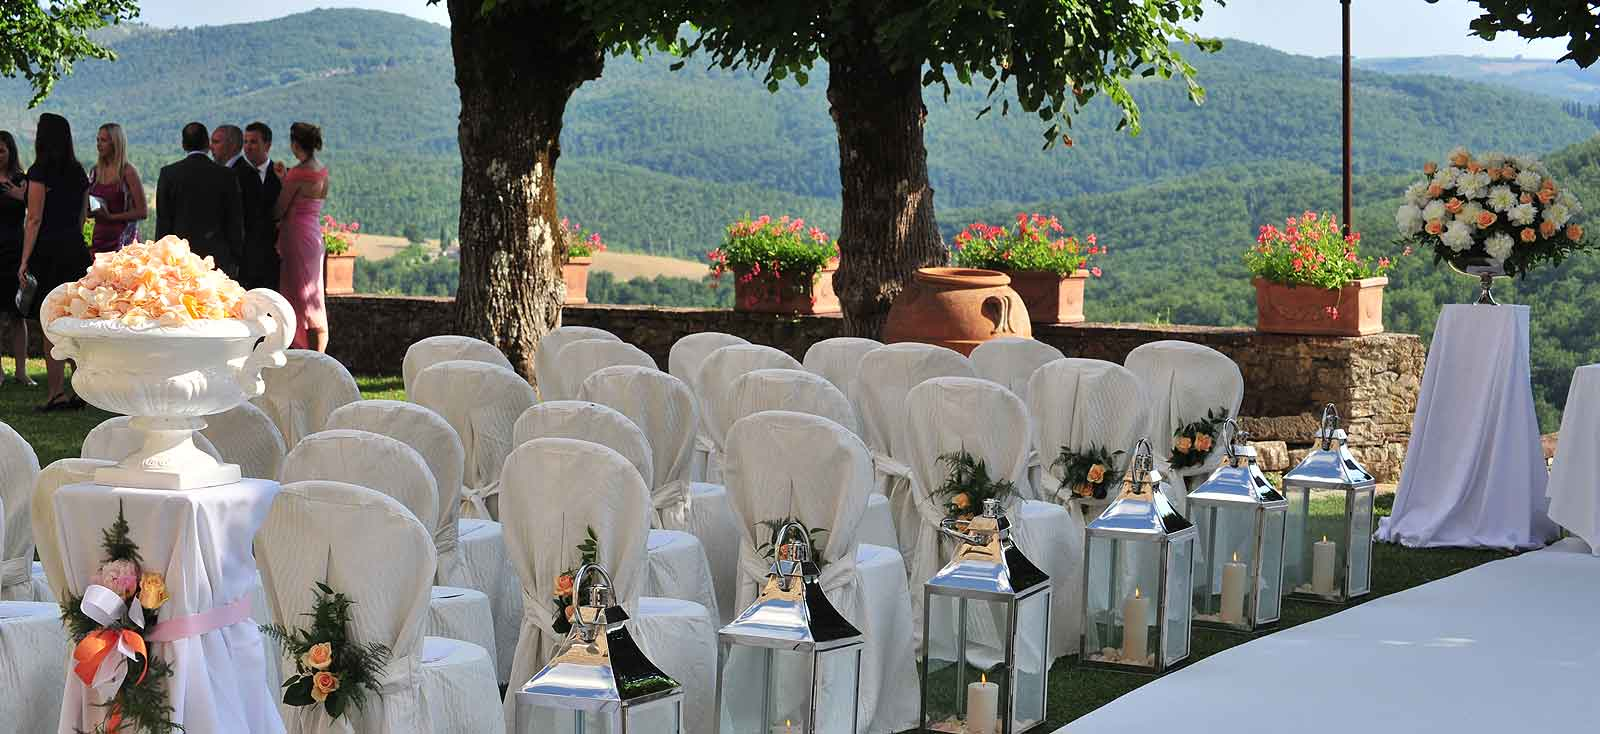 Weddings In Italy And Mission Wedding Planner Soro